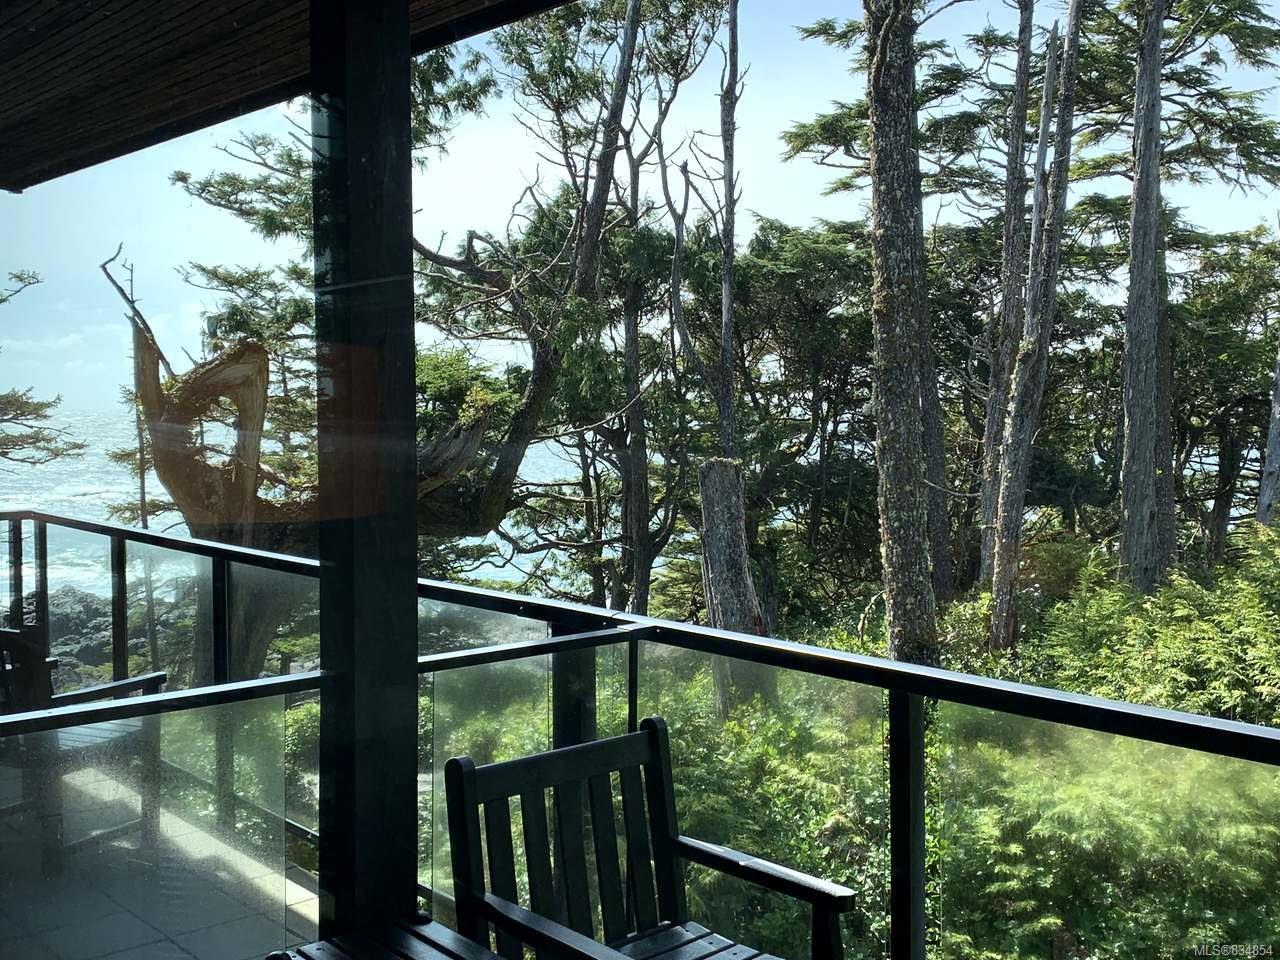 Main Photo: 319 596 Marine Dr in UCLUELET: PA Ucluelet Condo for sale (Port Alberni)  : MLS®# 834854